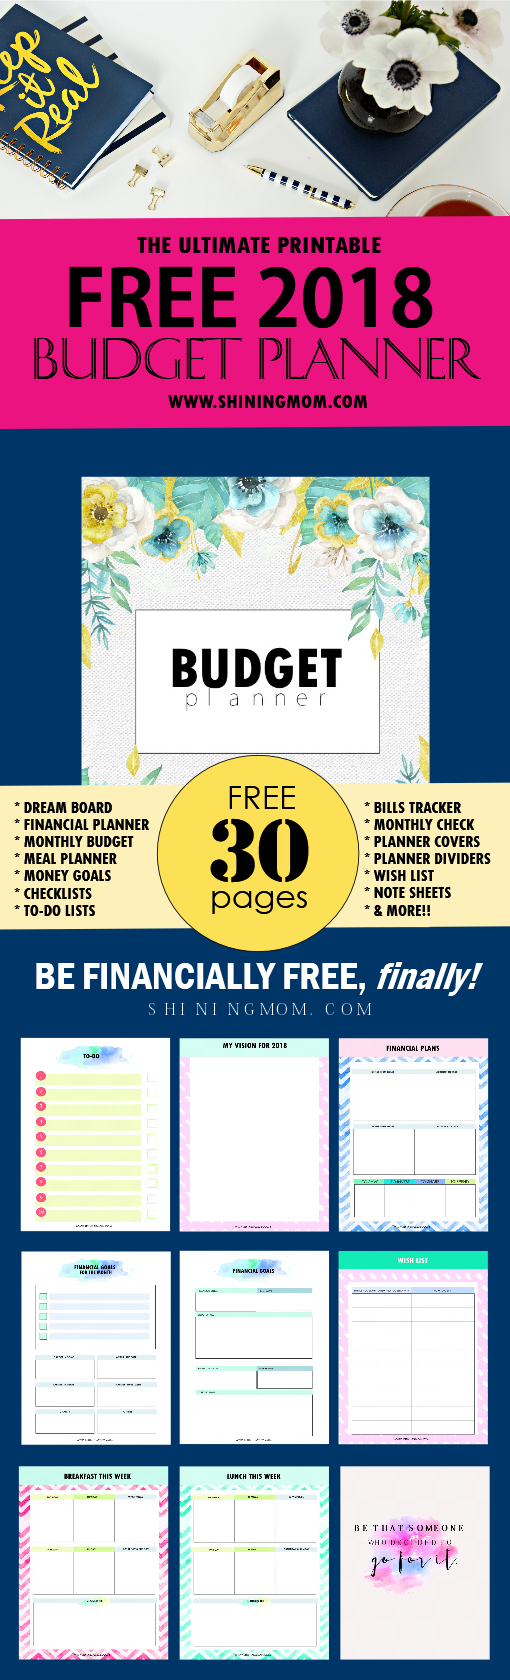 The Ultimate Free Printable 2018 Budget Planner You Need! - Free Printable Financial Planner 2017